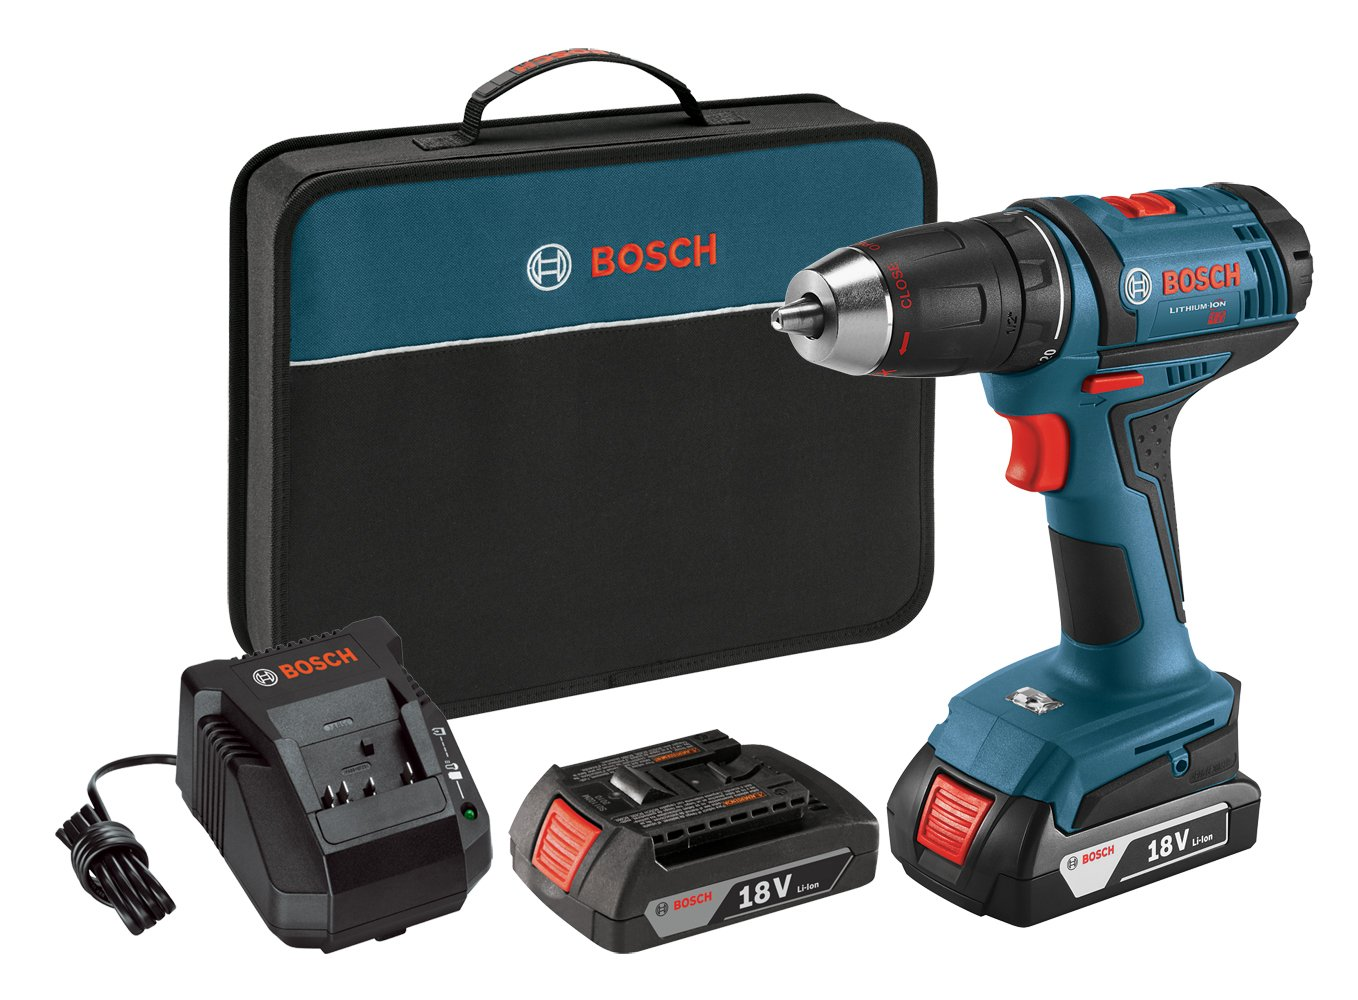 Bosch Power Tools Drill Driver Kit DDB181-02 – 18V Cordless Drill Driver Tool Set with 2 Lithium Ion Batteries, 18 Volt Charger, Soft Carry Contractor Bag